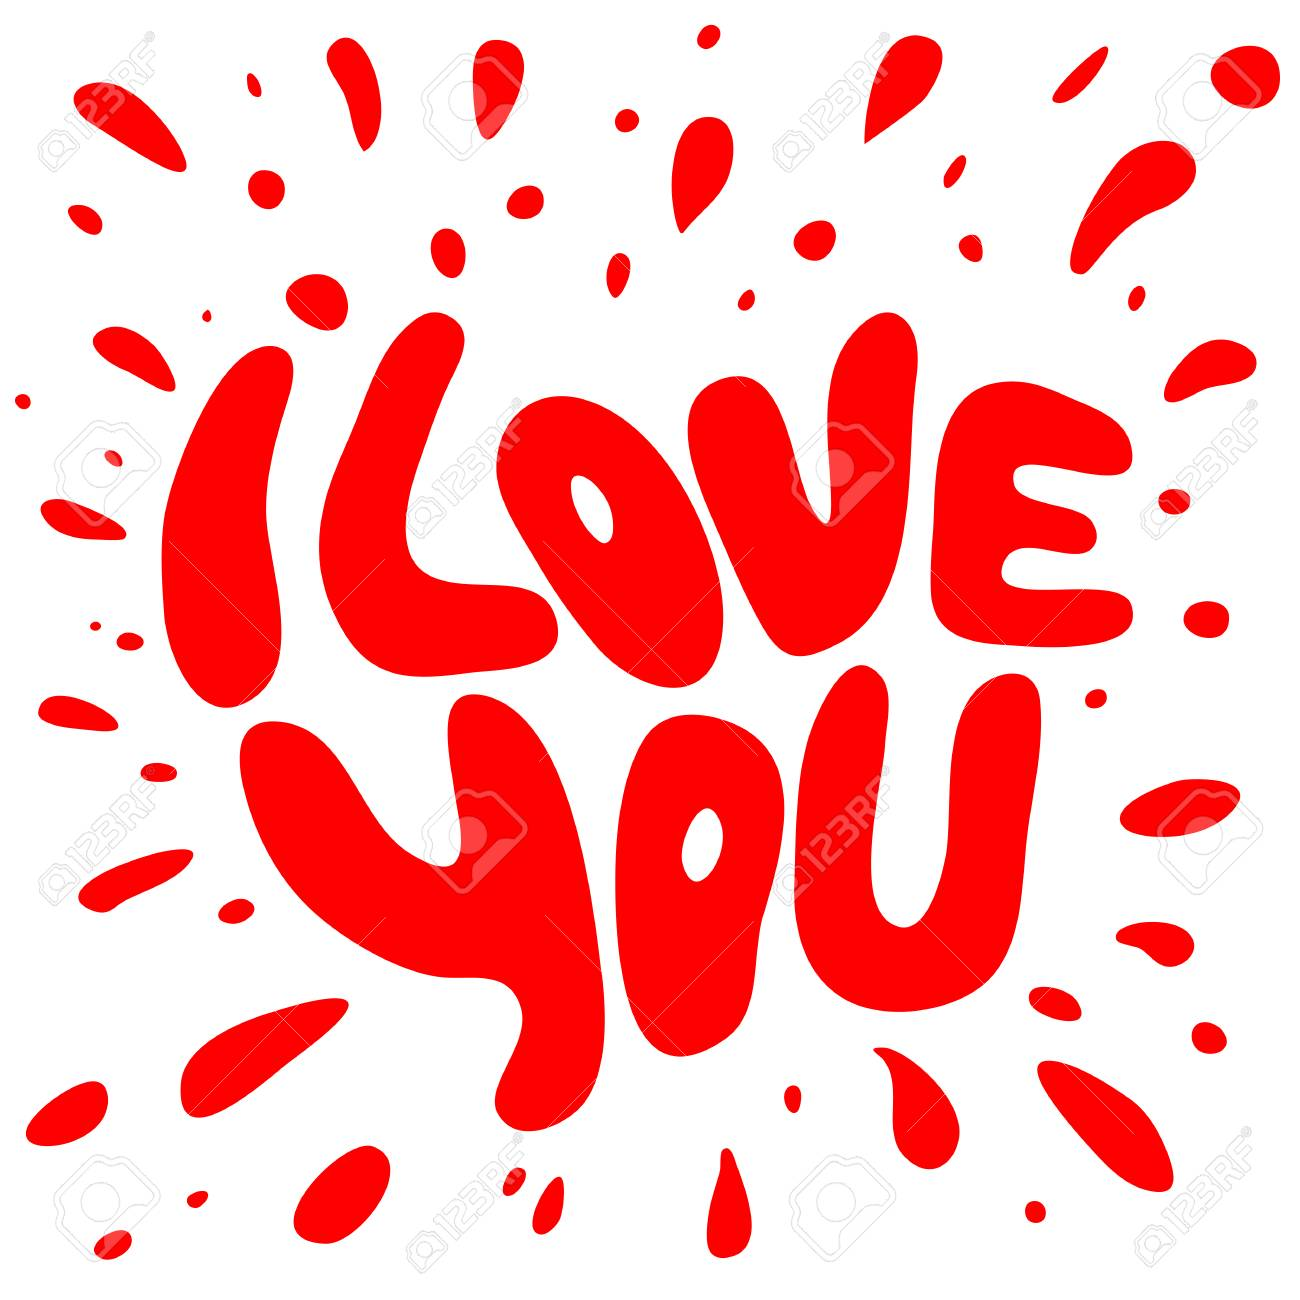 Words I Love You Shaped Graphics Elements For Greeting Cards